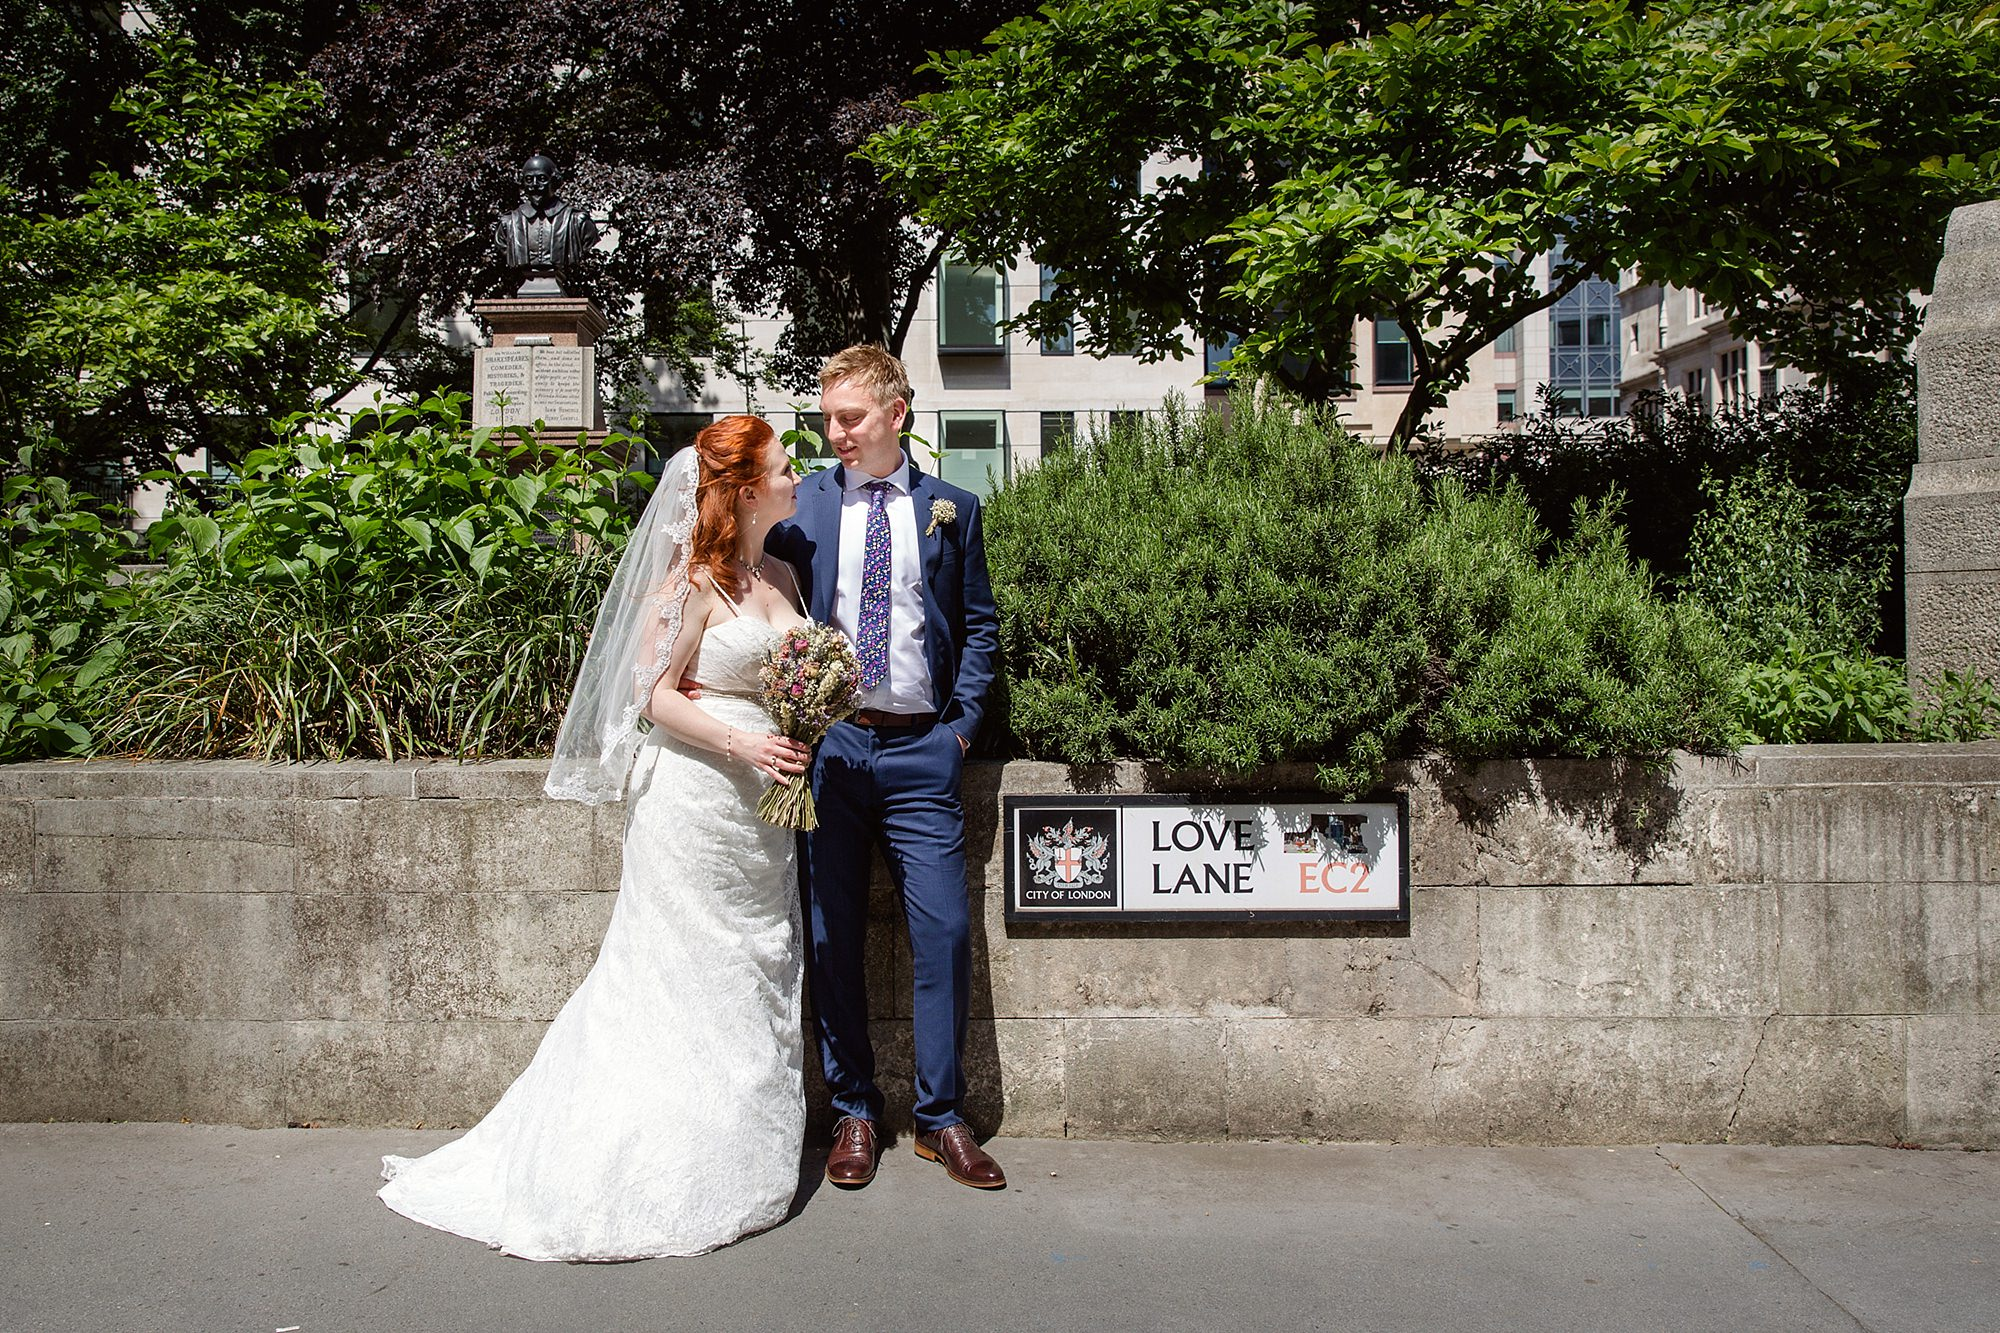 oyster shed wedding portrait of bride and groom at love lane